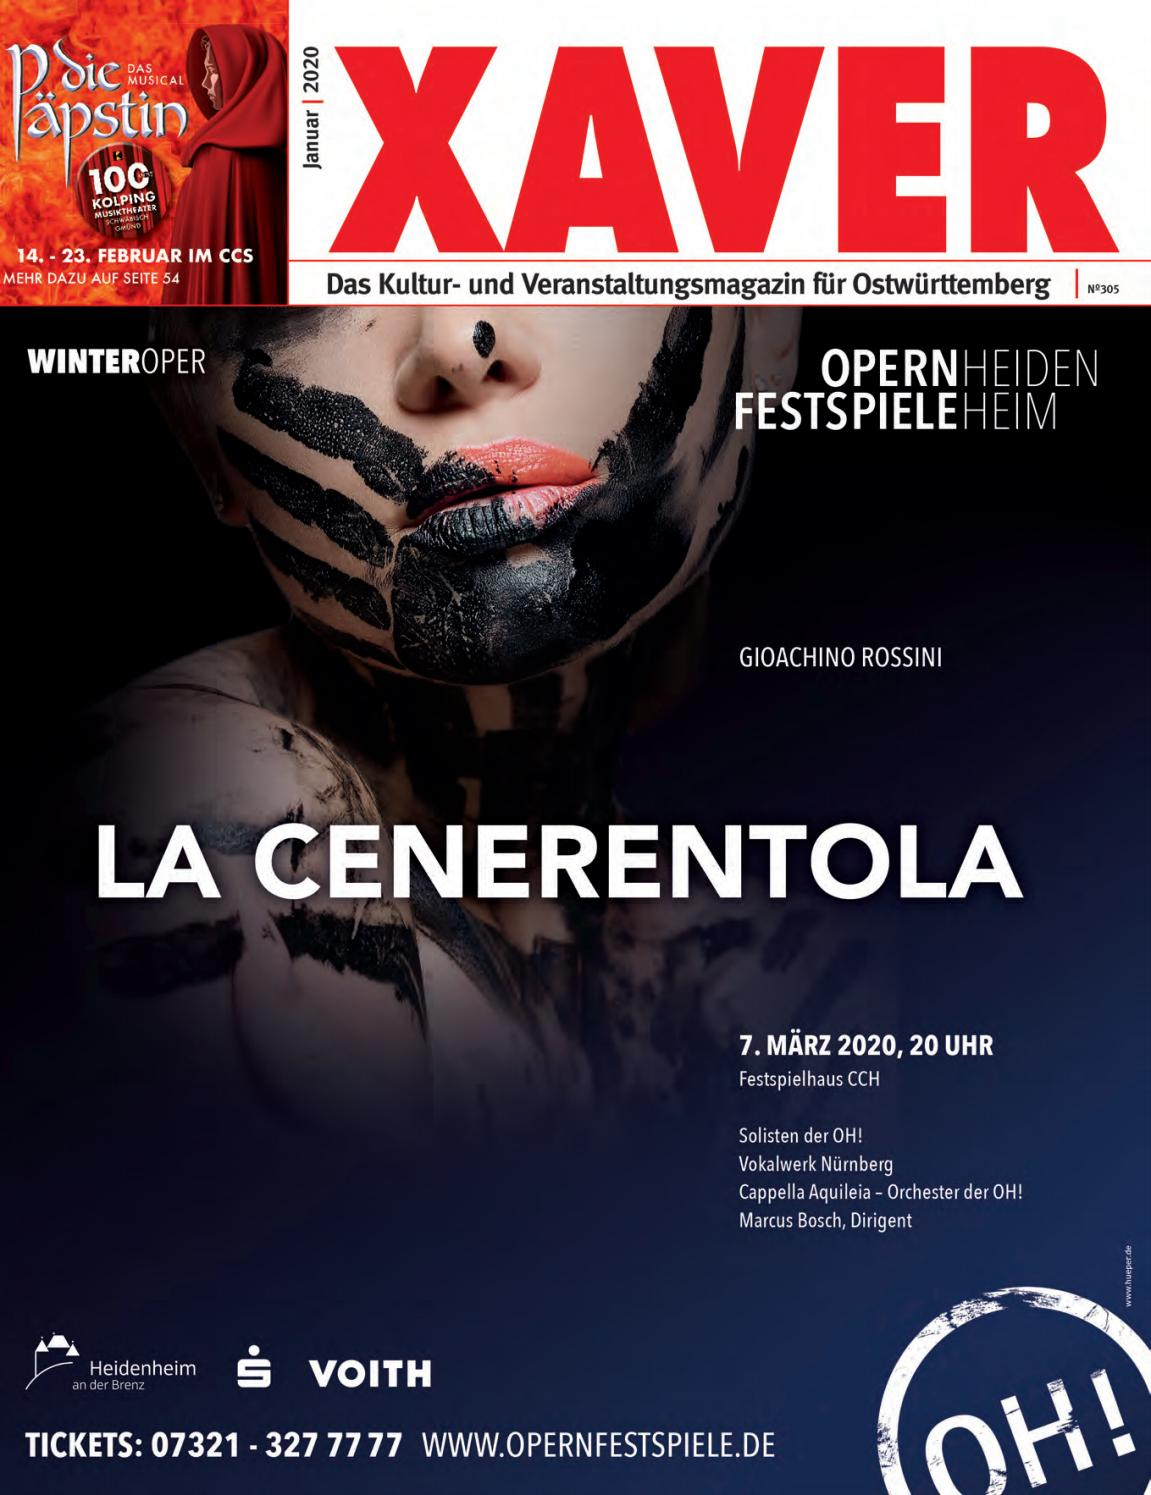 Xaver 1 20 By Hariolf Erhardt Issuu